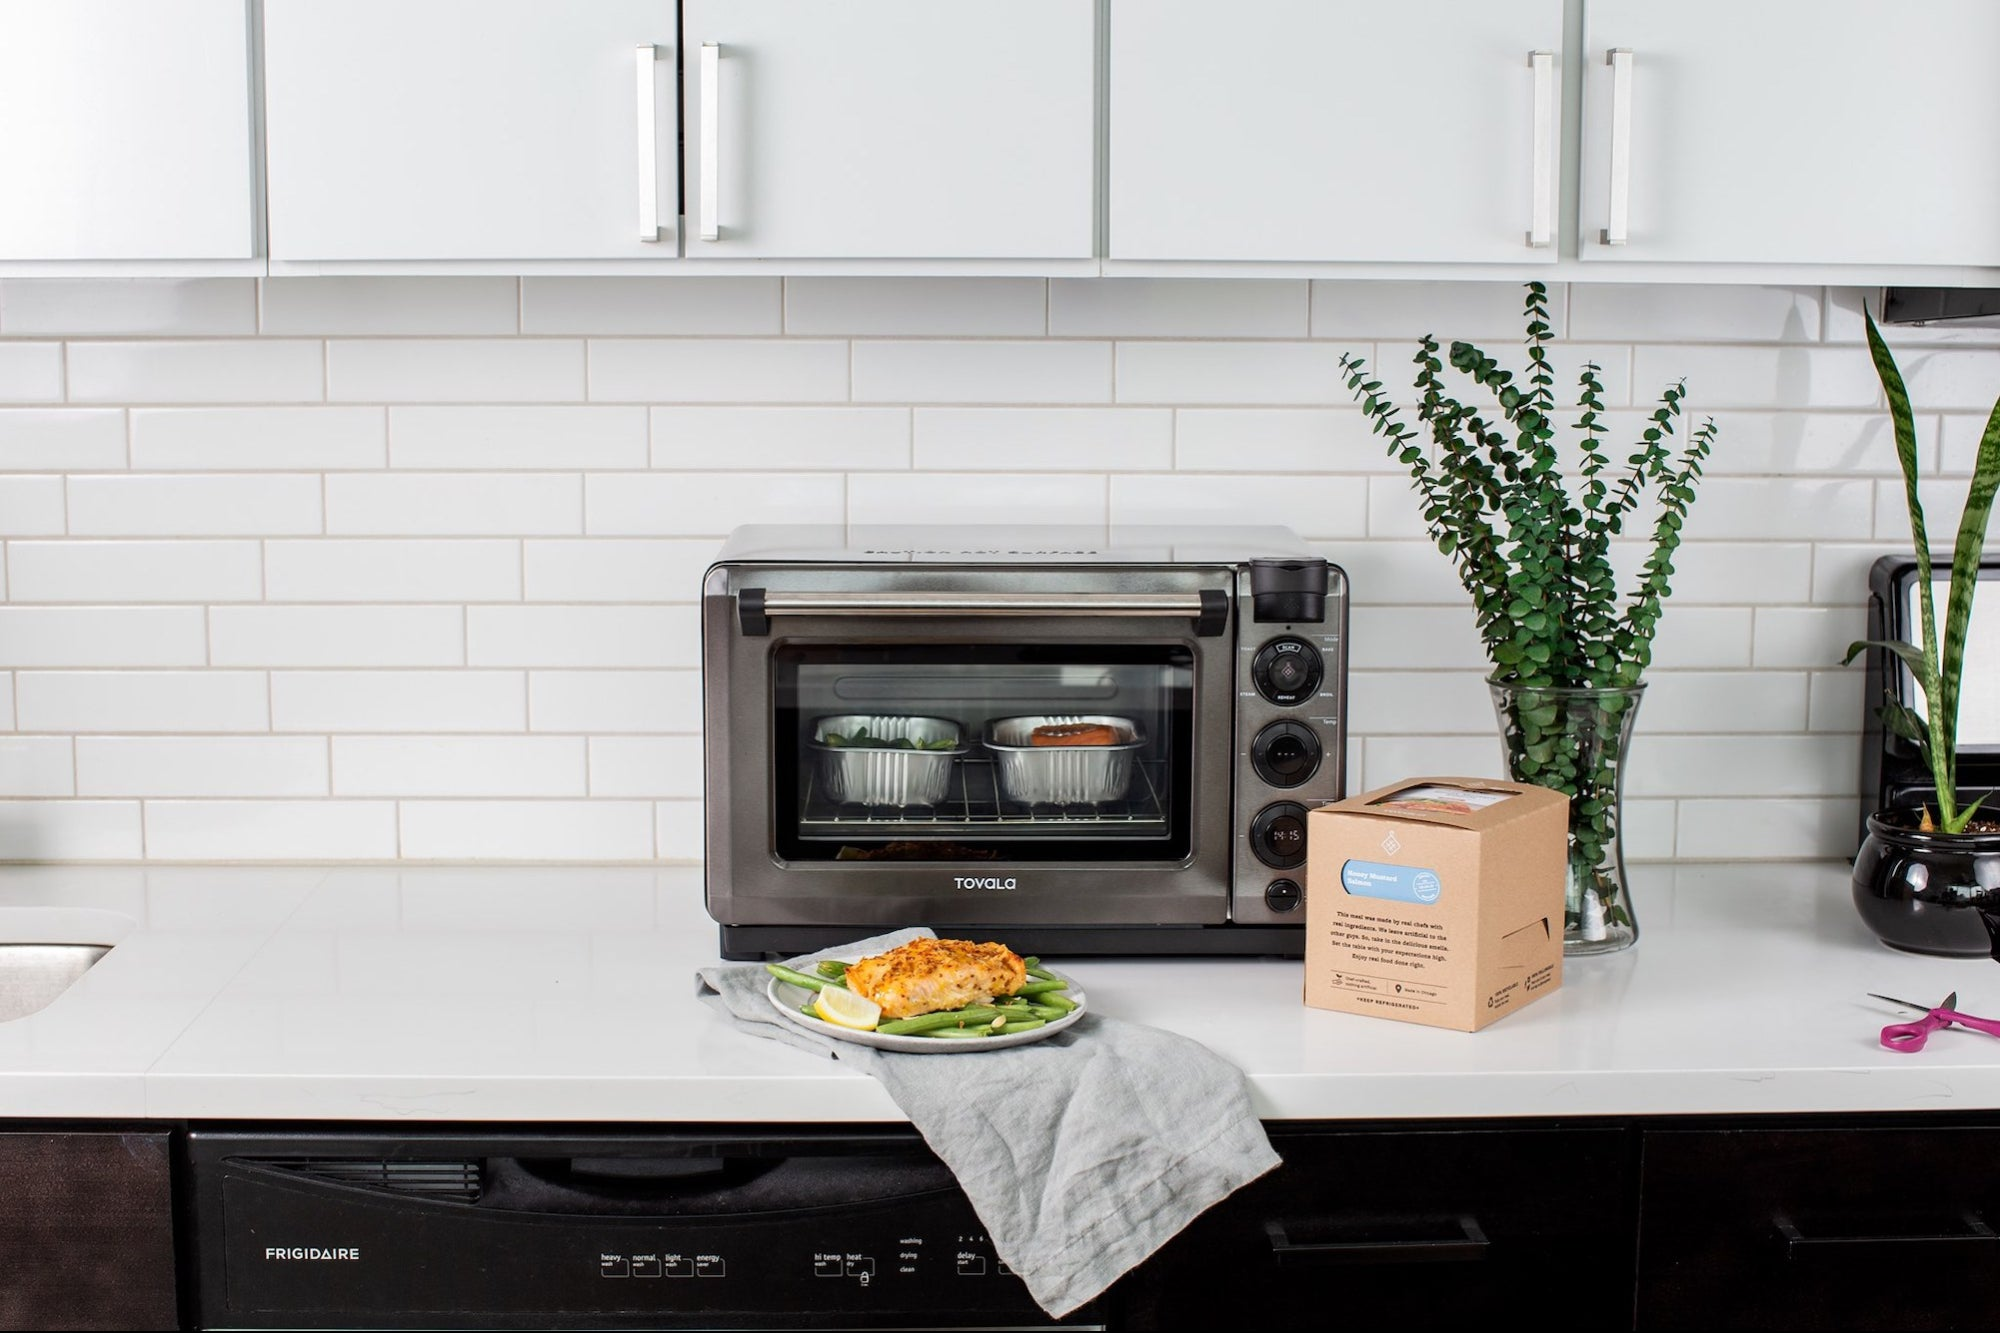 This Genius Smart Oven Is 2020's Instant Pot &#8212 And It's 32 Percent Off Today